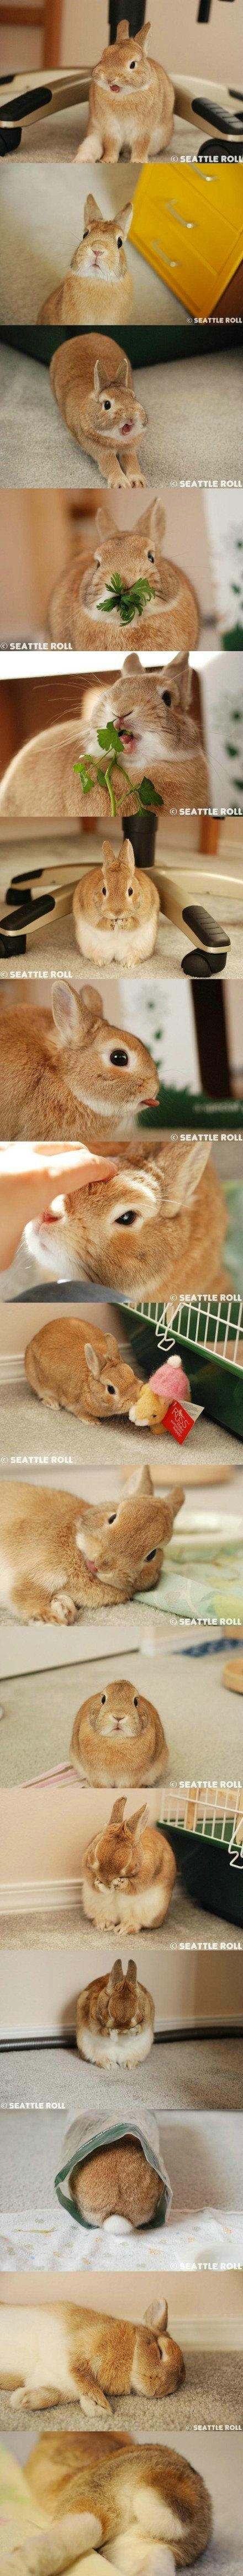 Great Pics Of A Bunny And All The Cute Things It Does